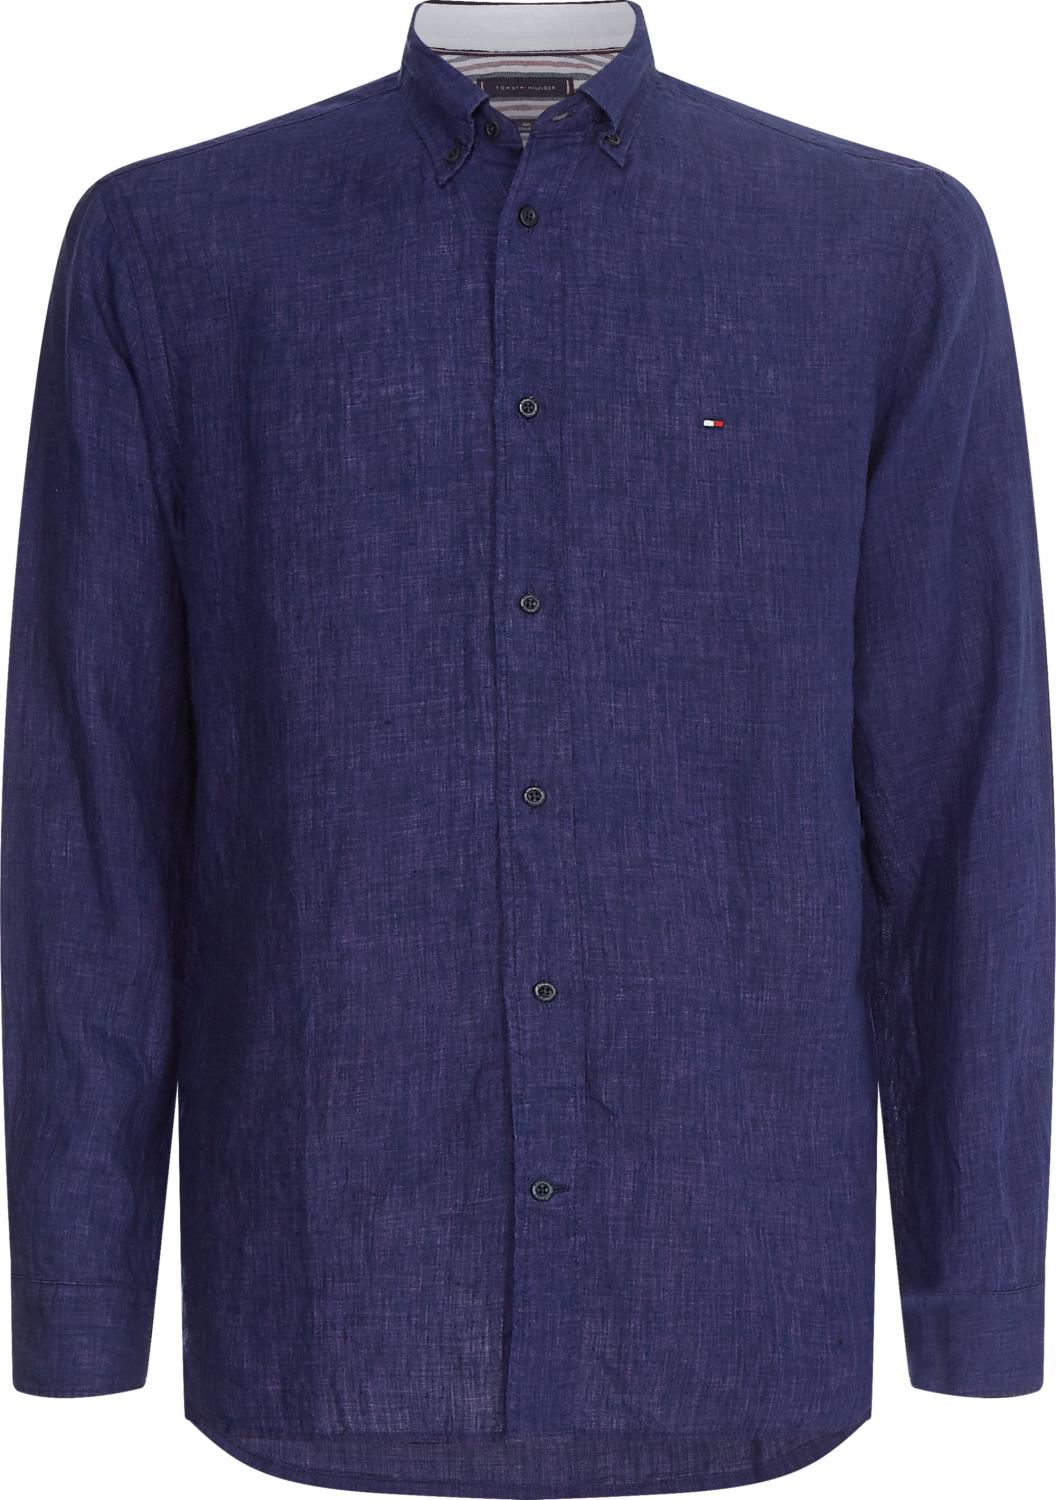 Tommy Hilfiger PIGMENT DYED LINEN SHIRT